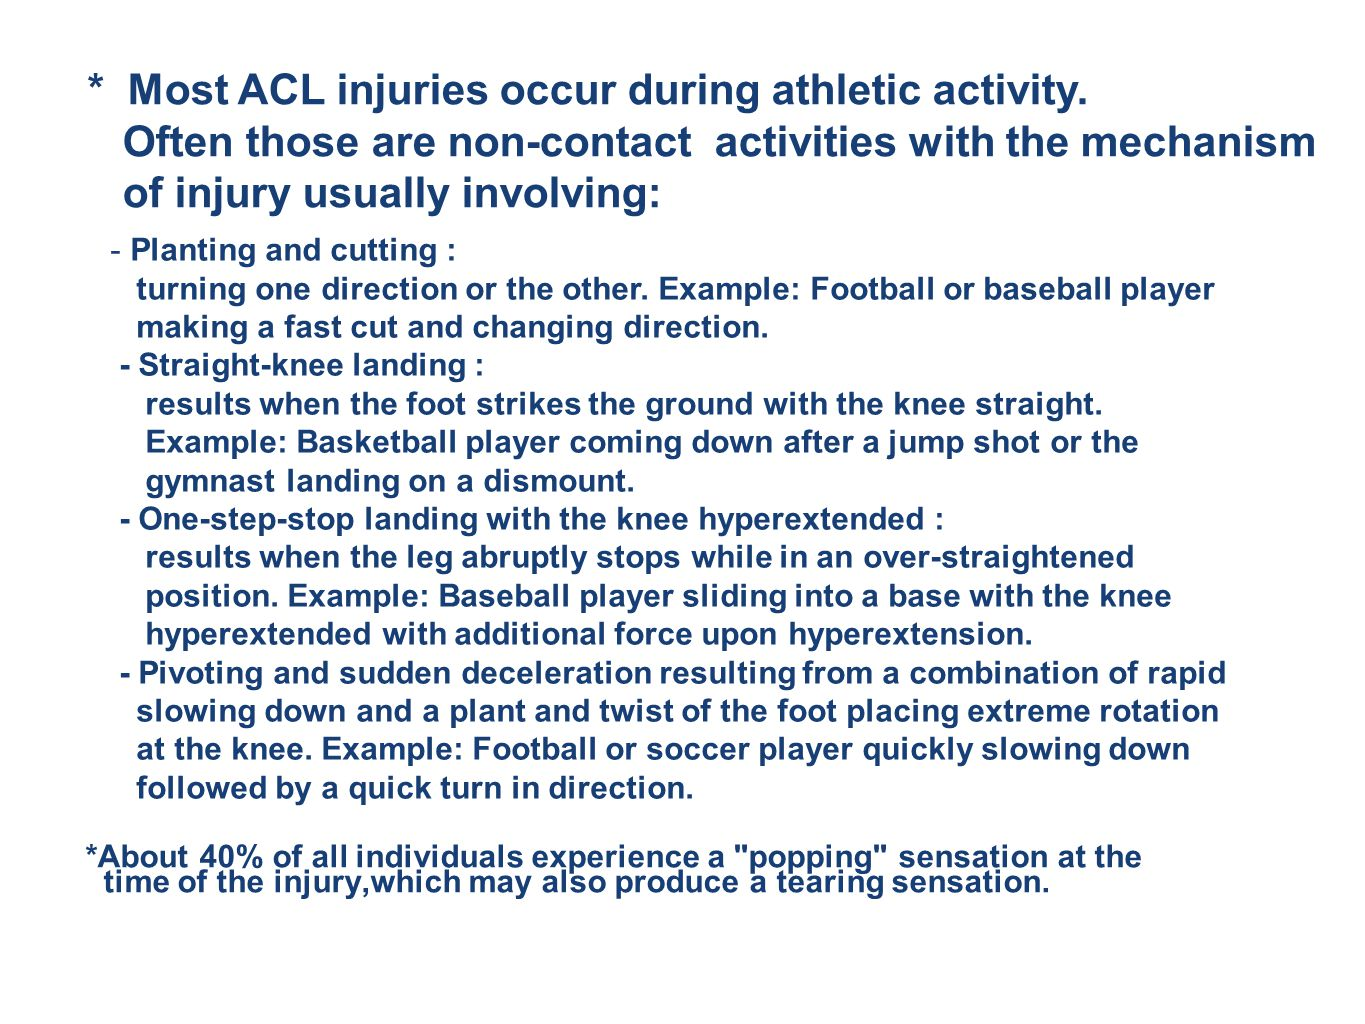 Most ACL injuries occur during athletic activity